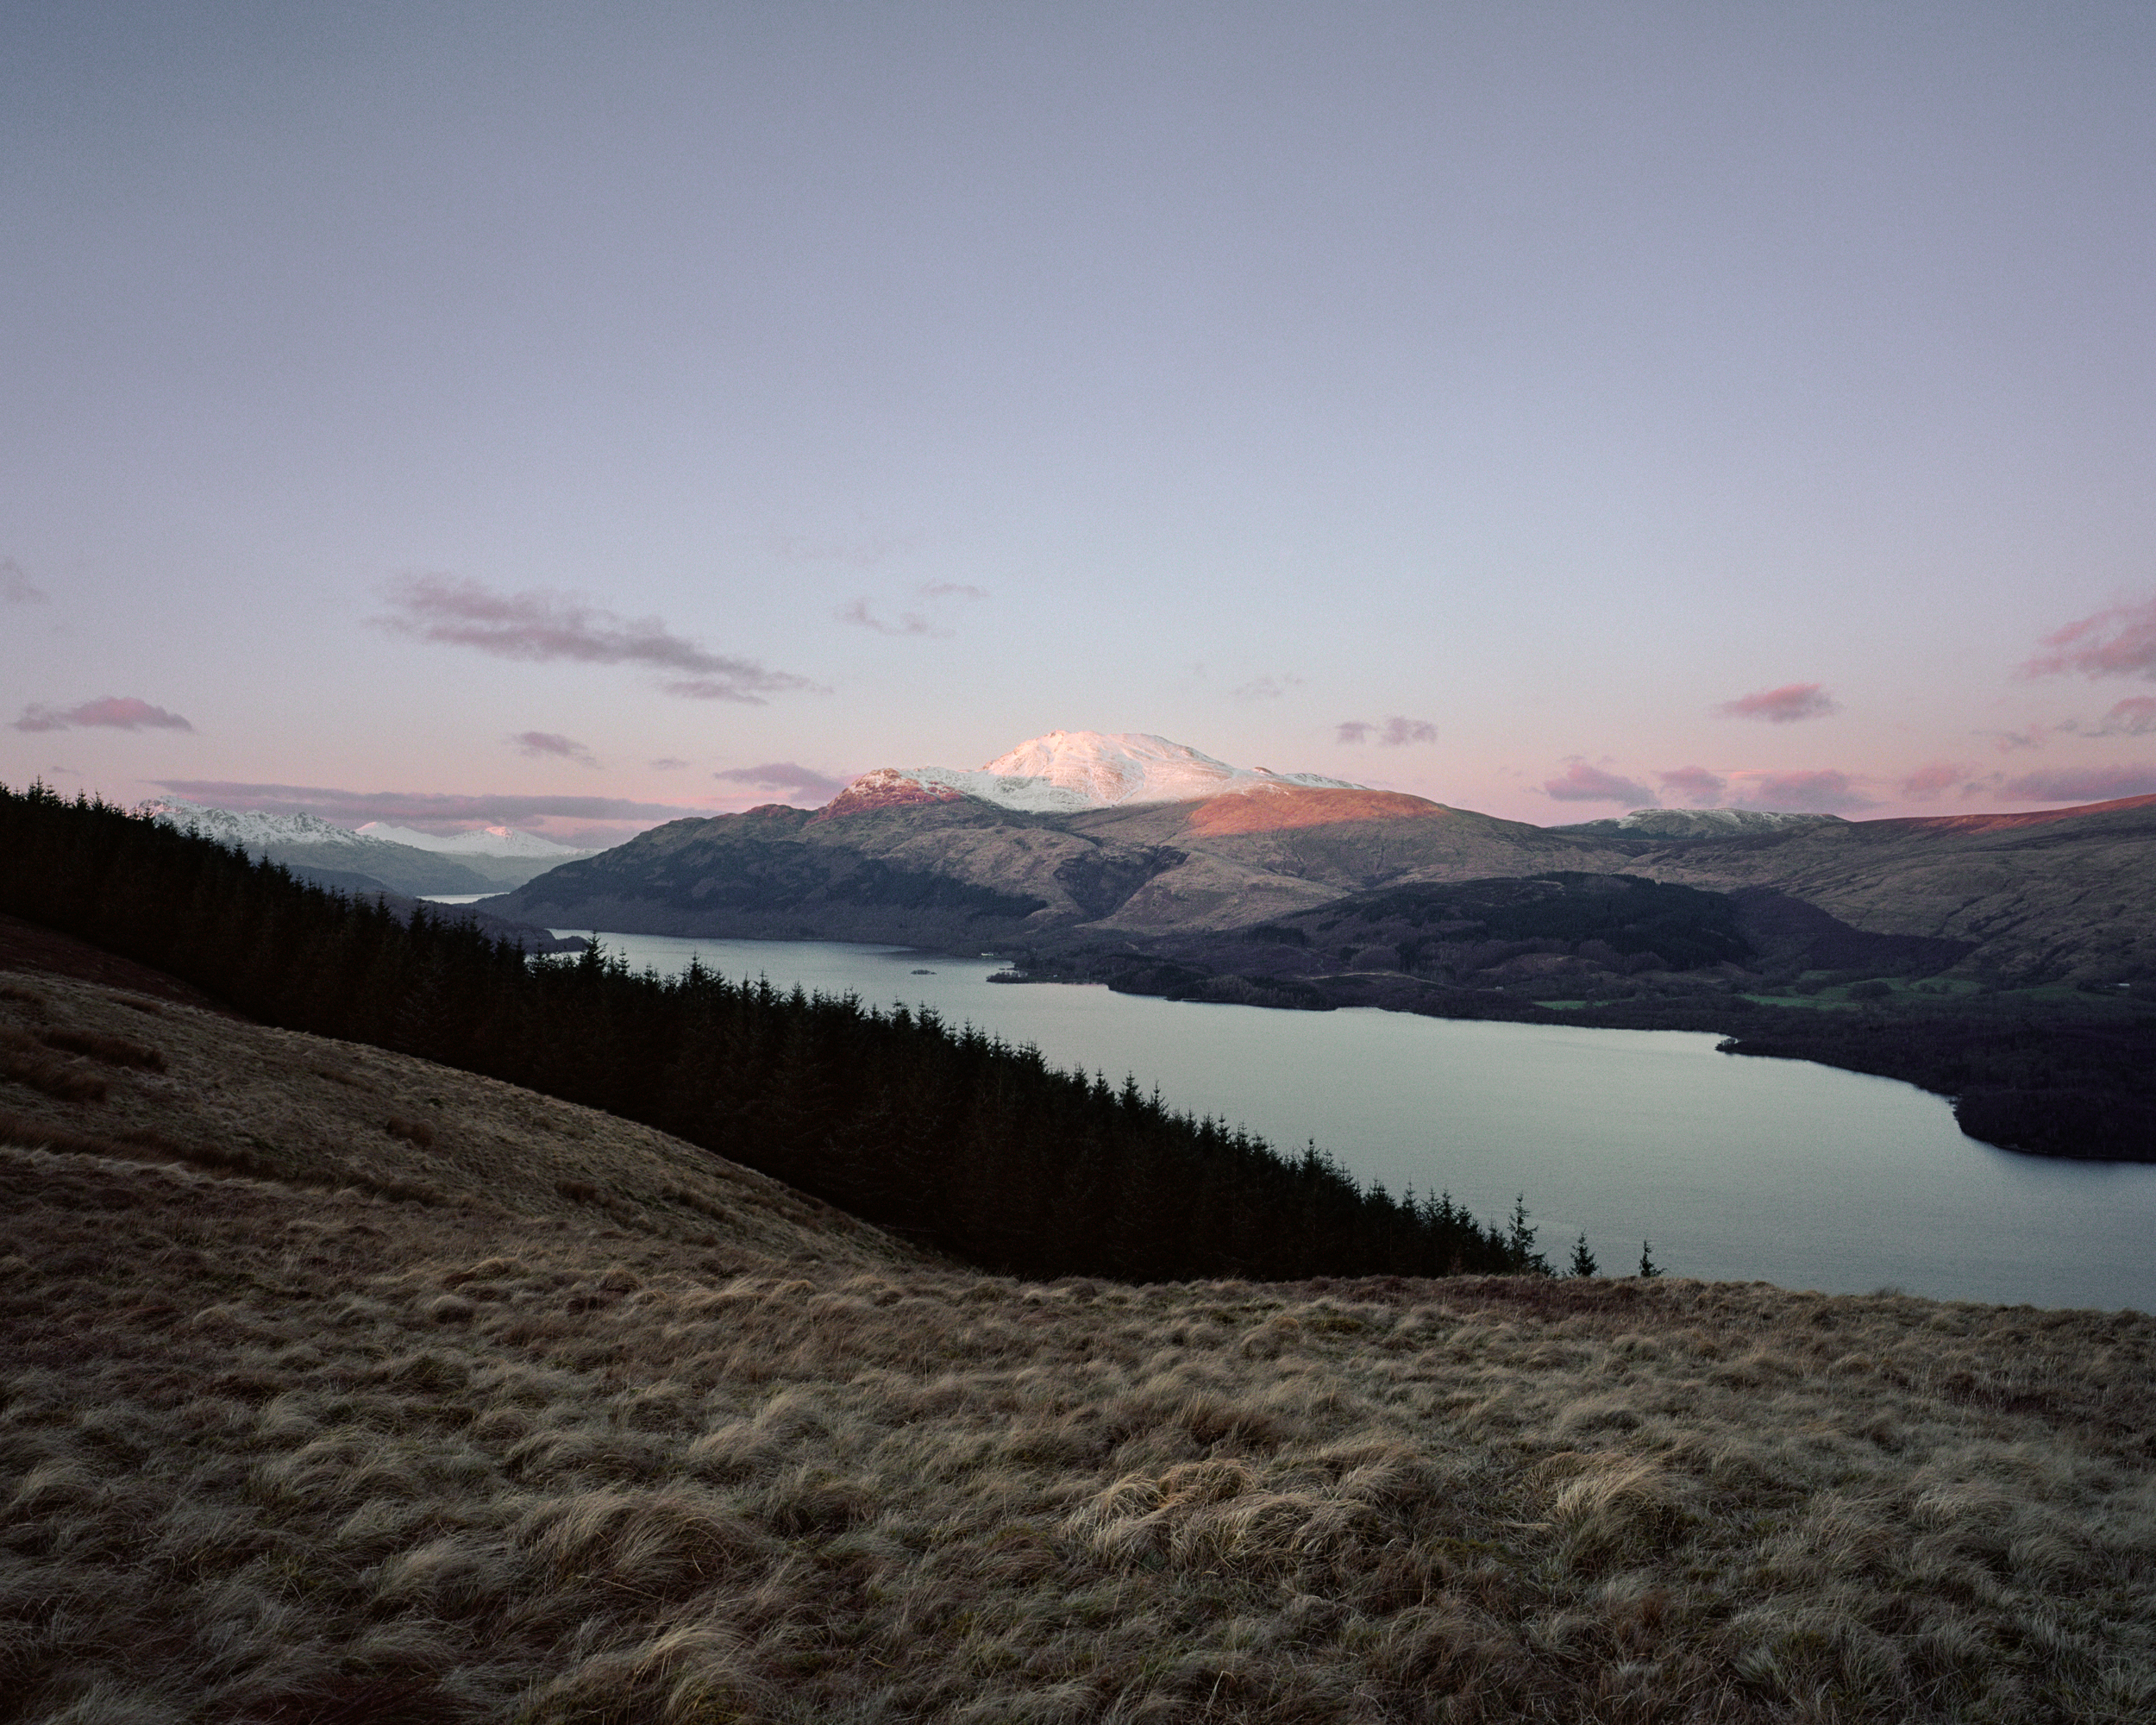 Ben Lomond, Loch Lomond, documentary scotland, documentary photography, mat hay, freelance photographer, photographer edinburgh, london, scotland, highlands, landscapes, portraits, NHS,_.jpg